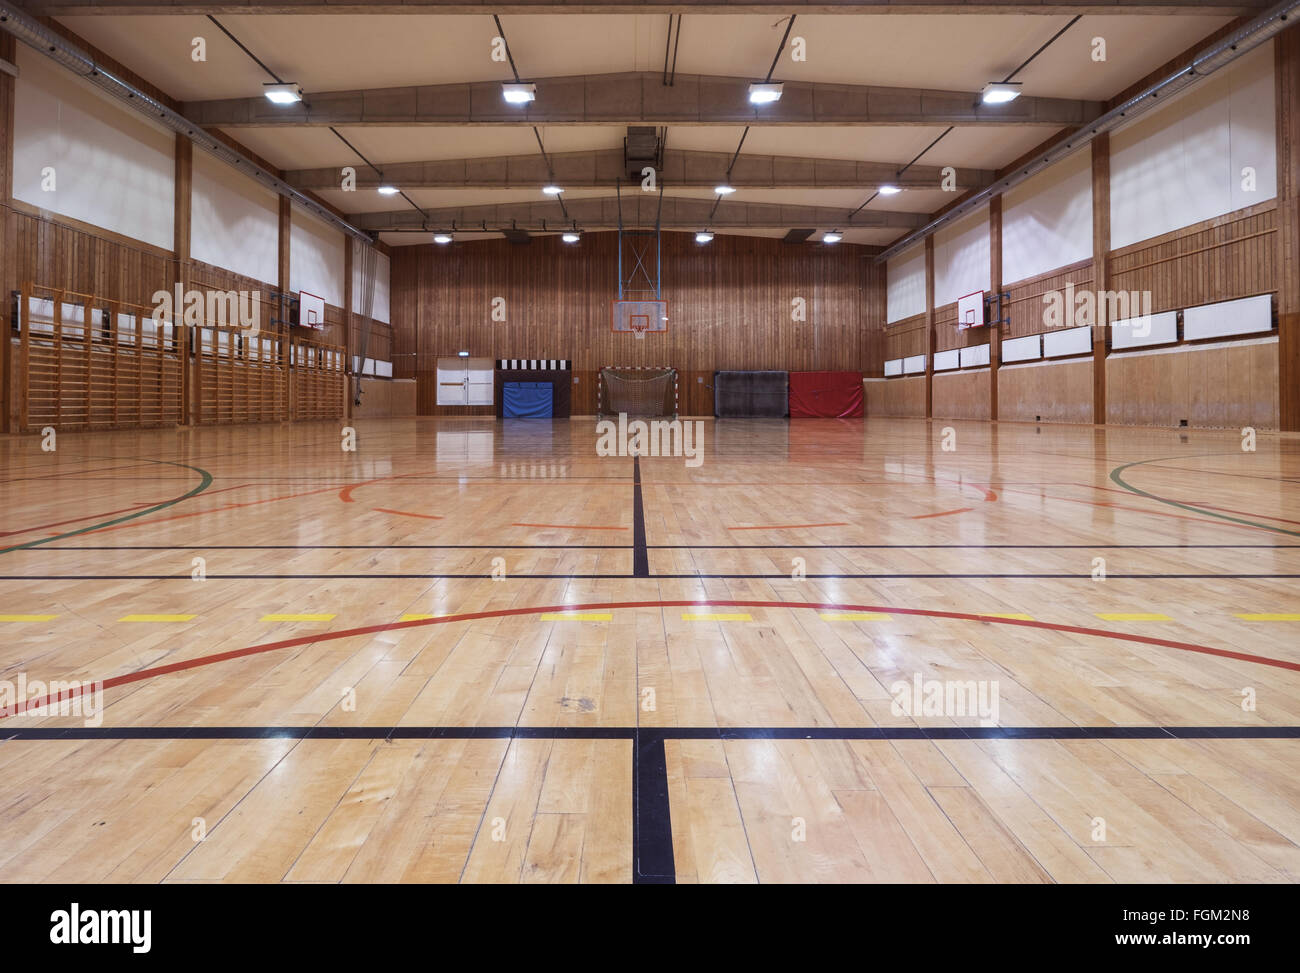 Interior of an old gymhall - Stock Image